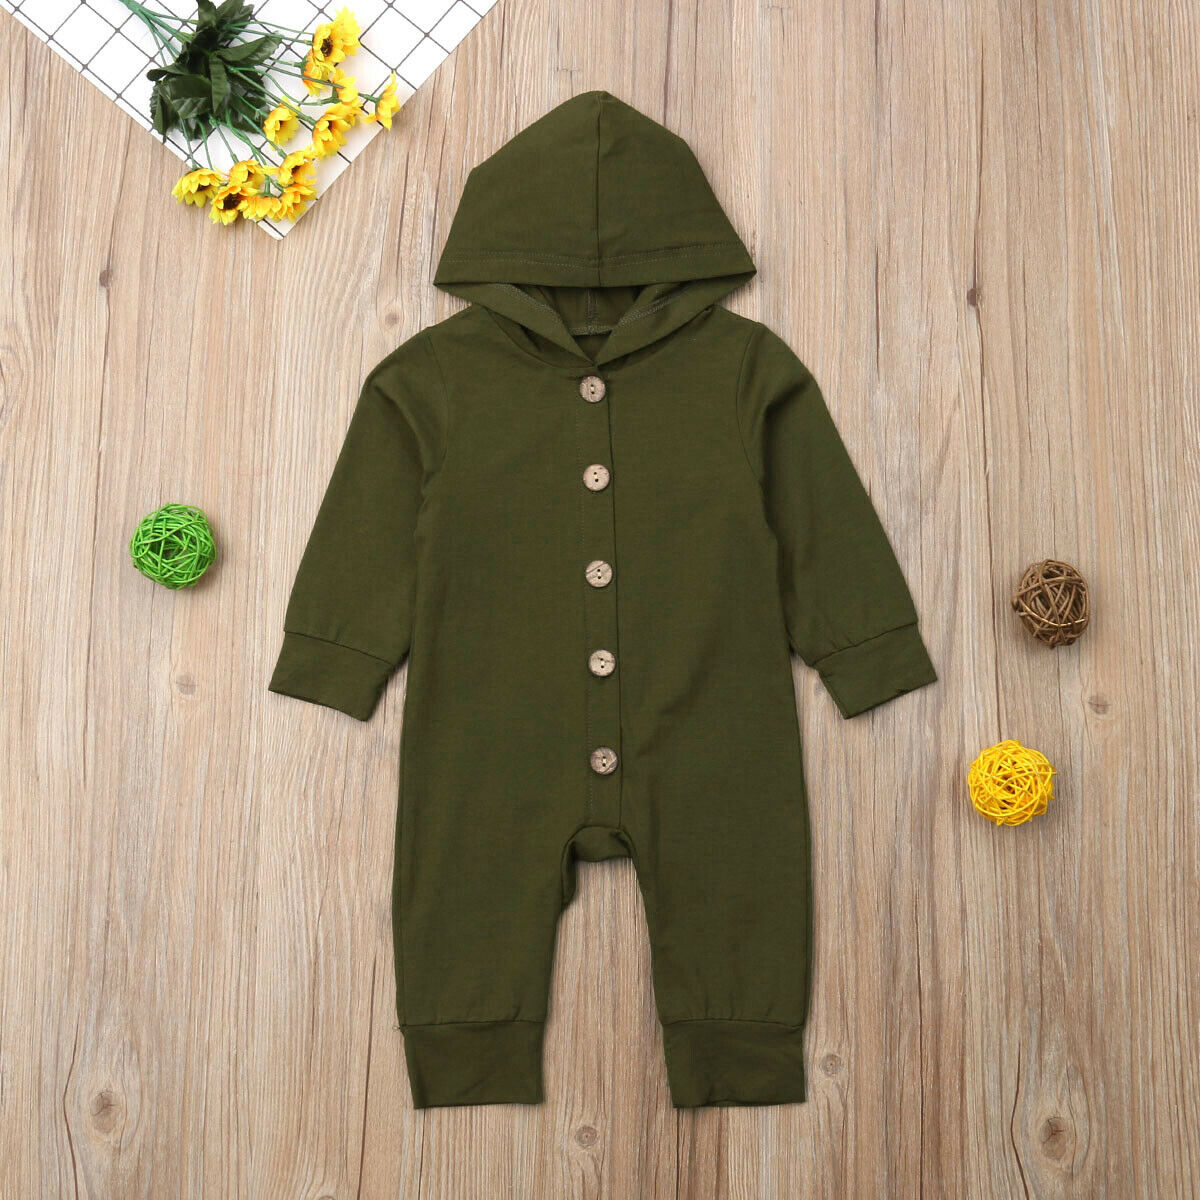 2019 Children Spring Autumn Clothing Baby Kids Boys Girls Infant Hooded Solid Romper Jumpsuit Long Sleeve 2019 Children Spring Autumn Clothing Baby Kids Boys Girls Infant Hooded Solid Romper Jumpsuit Long Sleeve Clothes Outfits 0-24M